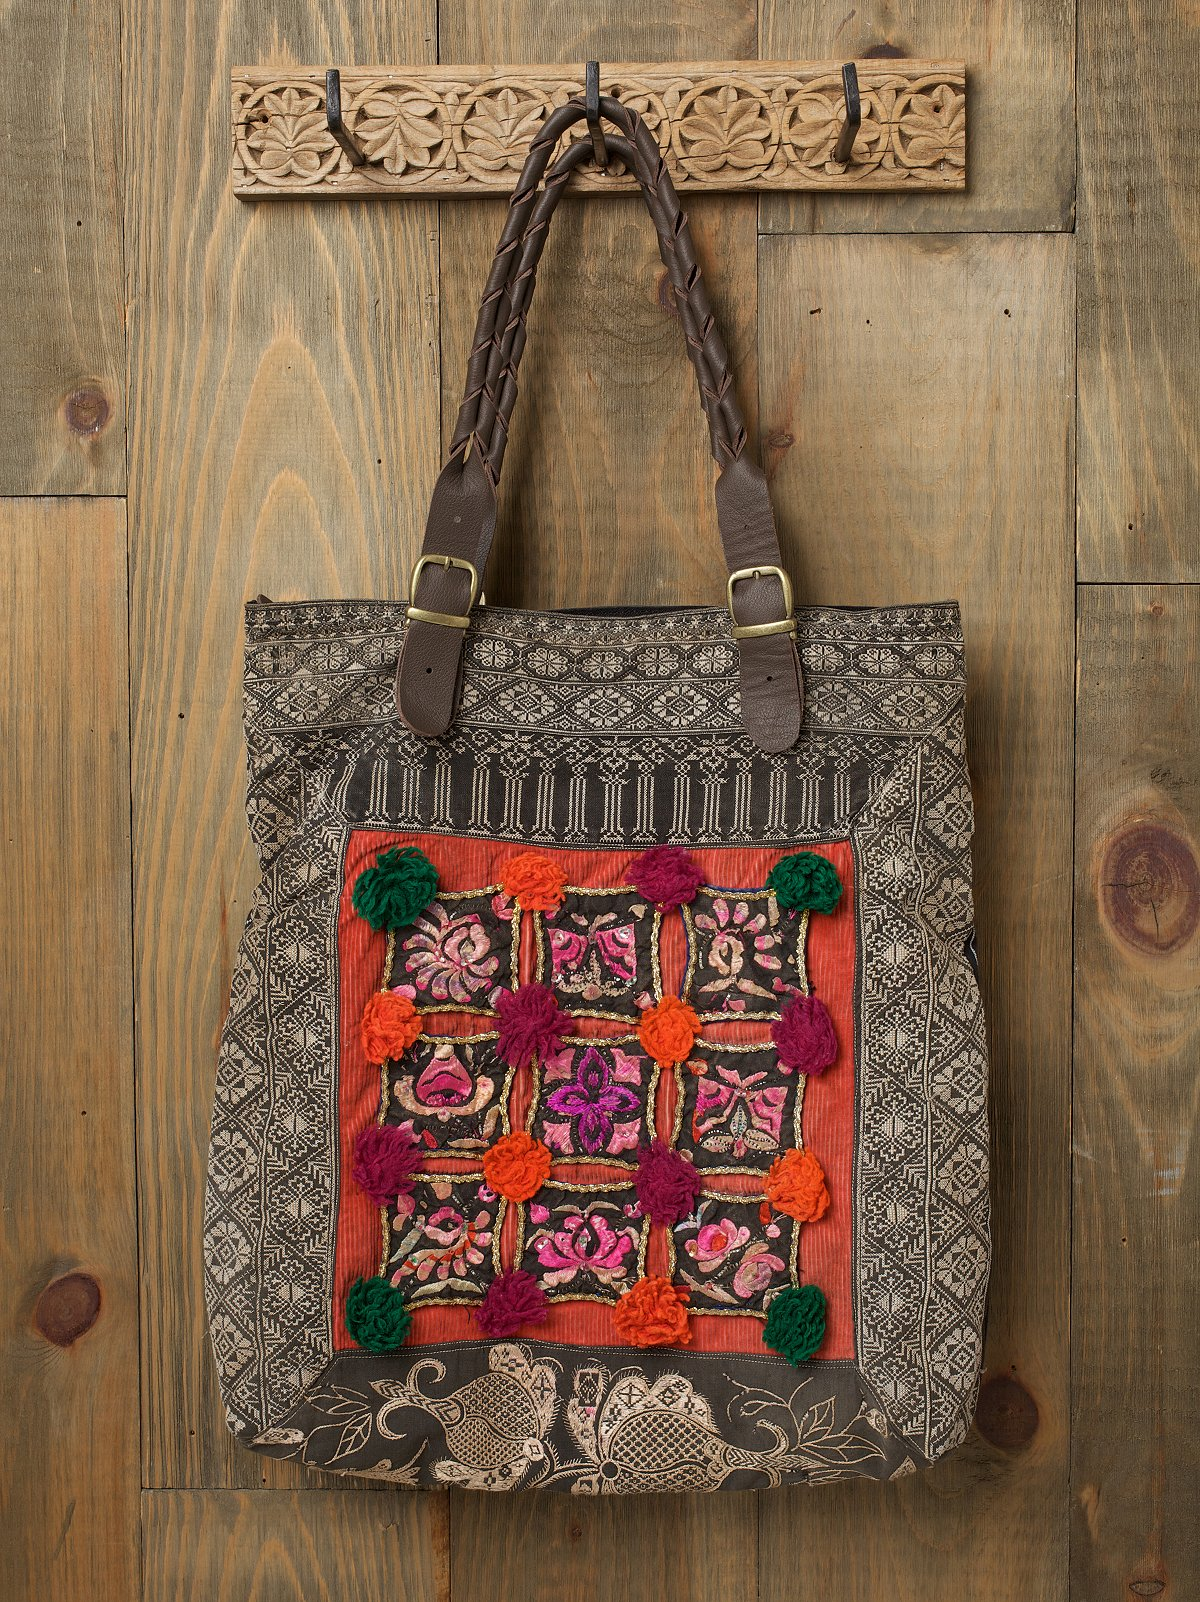 Embroidered Vintage Tote